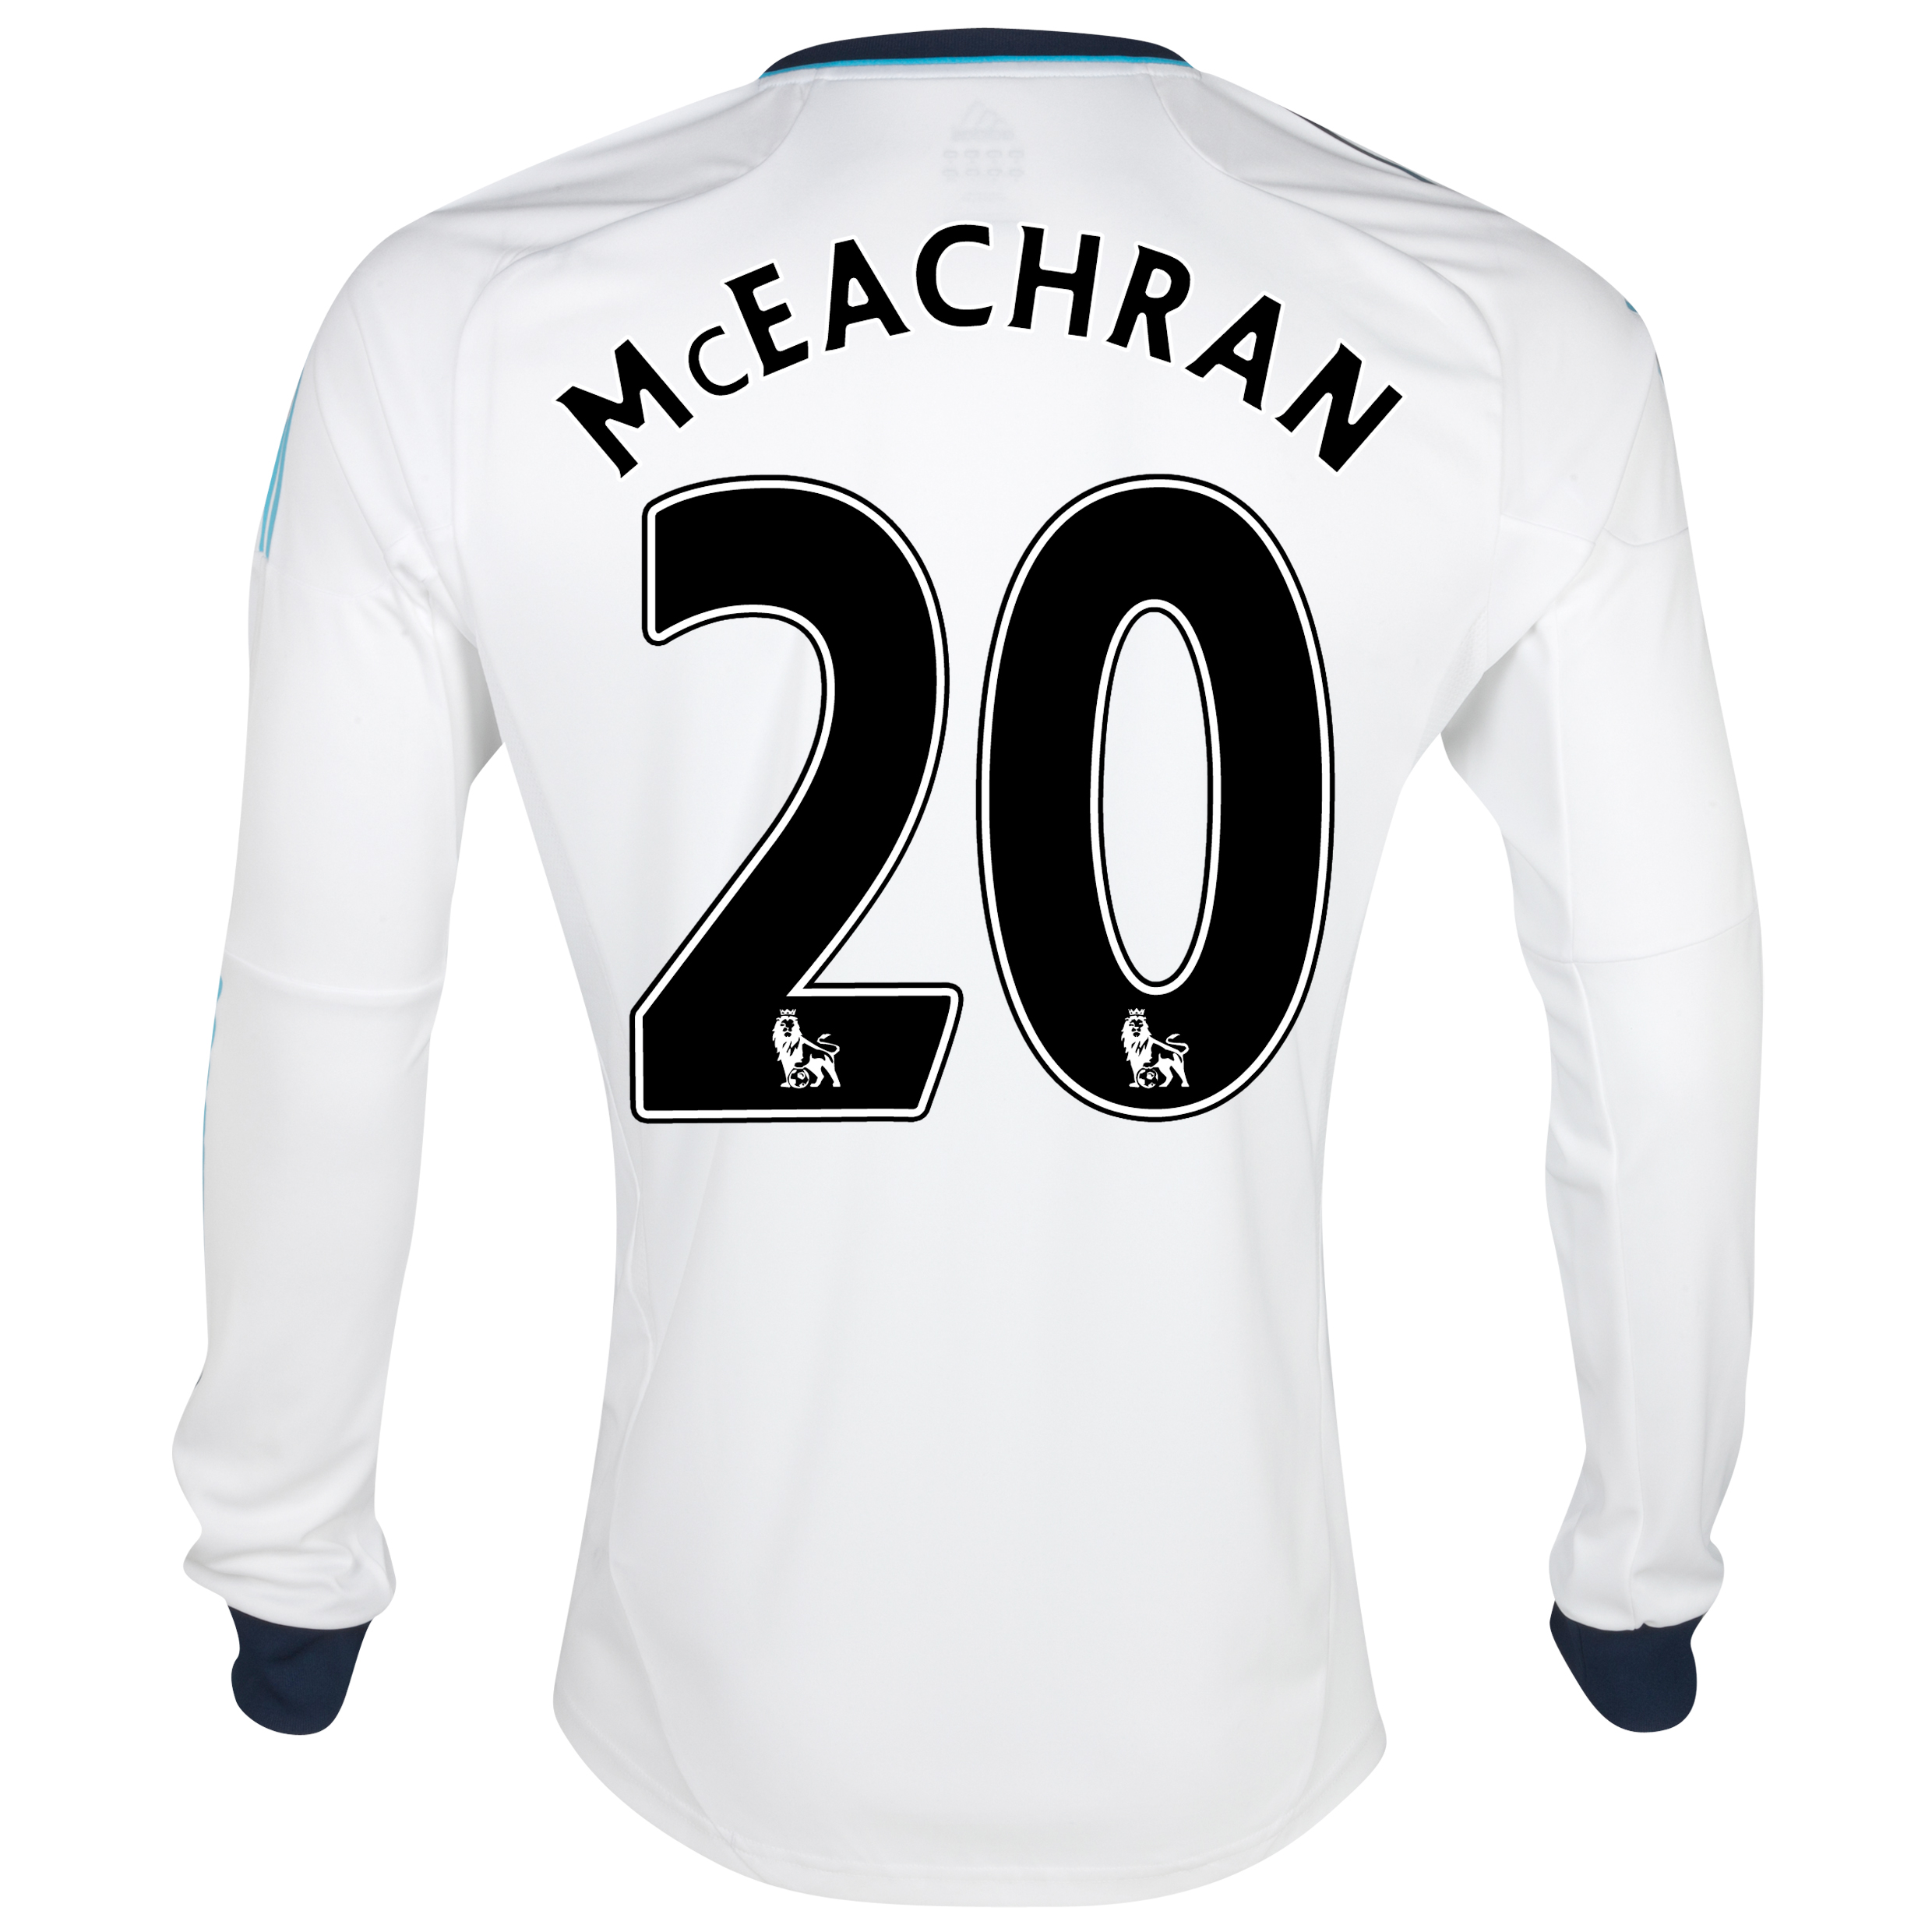 Chelsea Away Shirt 2012/13 - Long Sleeved  - Youths with McEachran 20 printing